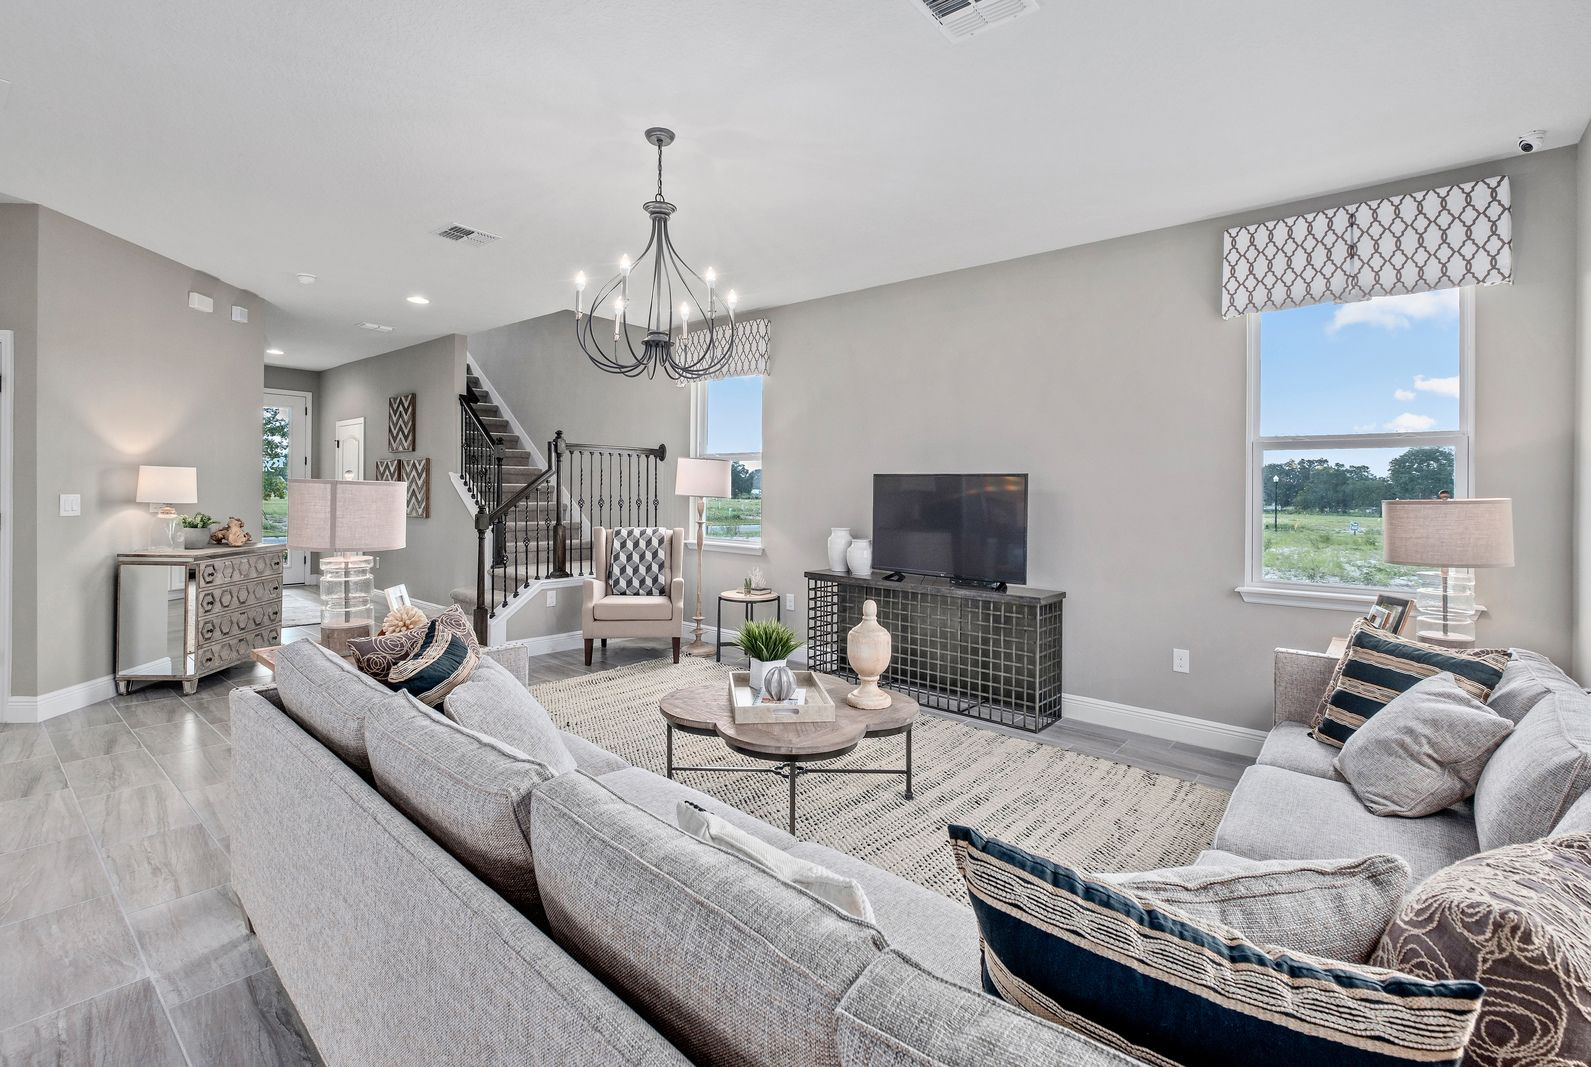 Living Area featured in the Summerland By Ryan Homes in Martin-St. Lucie-Okeechobee Counties, FL